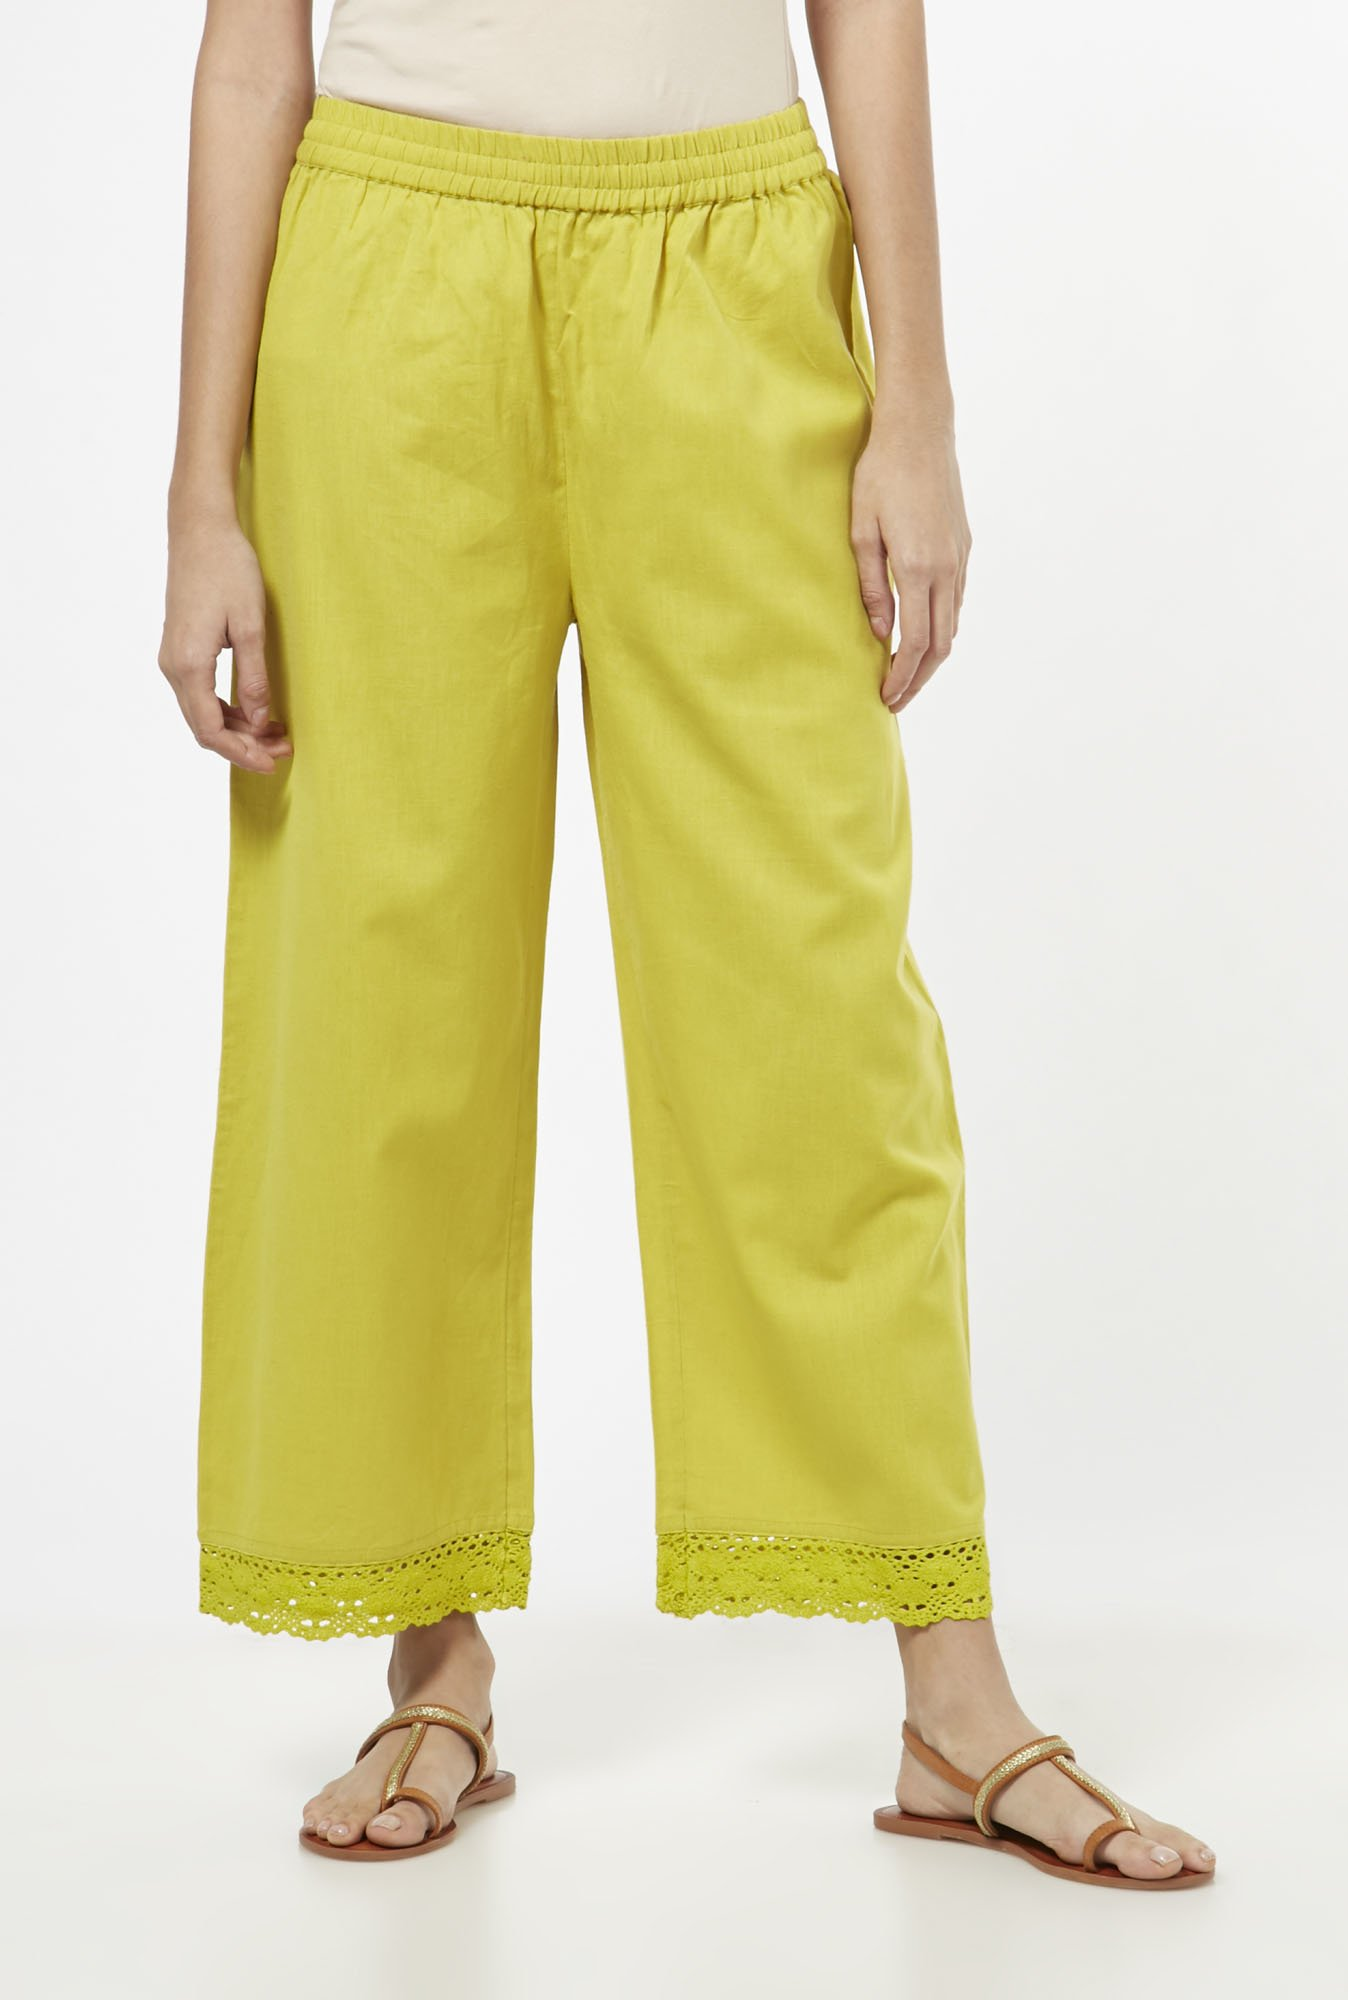 Utsa by Westside Lime Green Palazzos